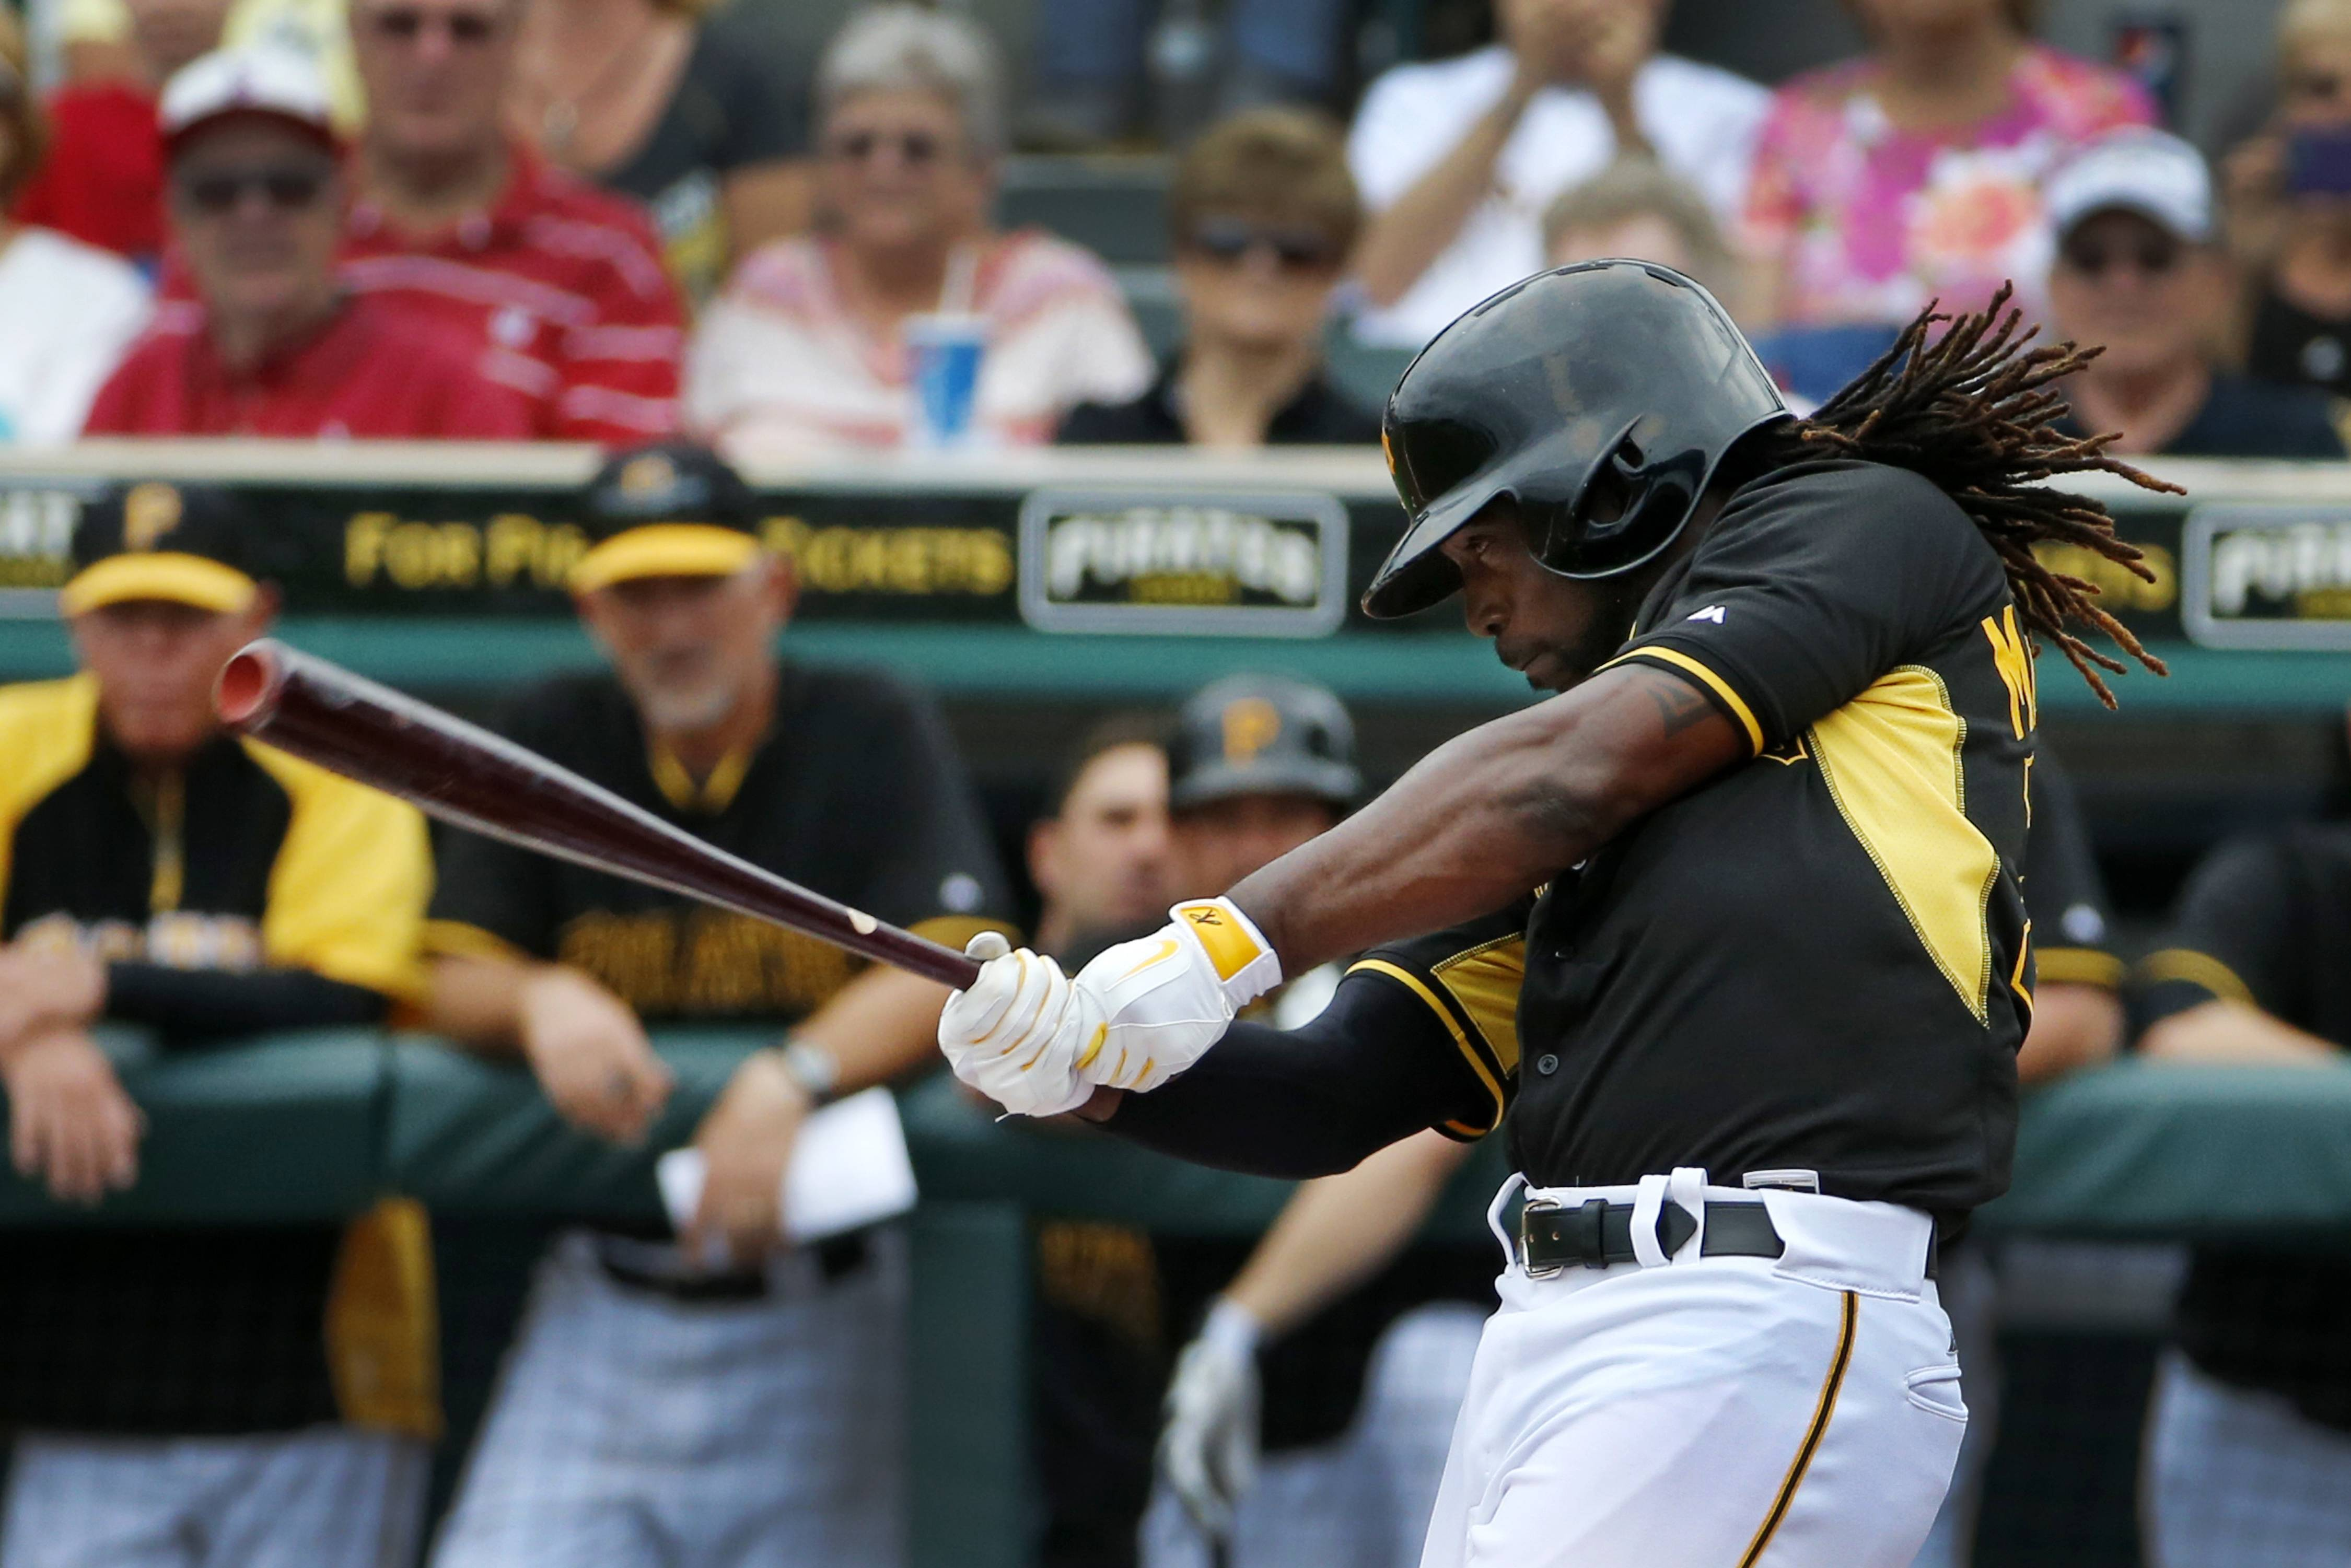 Pittsburgh Pirates' Andrew McCutchen singles off New York Yankees pitcher Ivan Nova during the first inning of a Feb. 26 exhibition spring training baseball game at McKechnie Field in Bradenton, Fla.